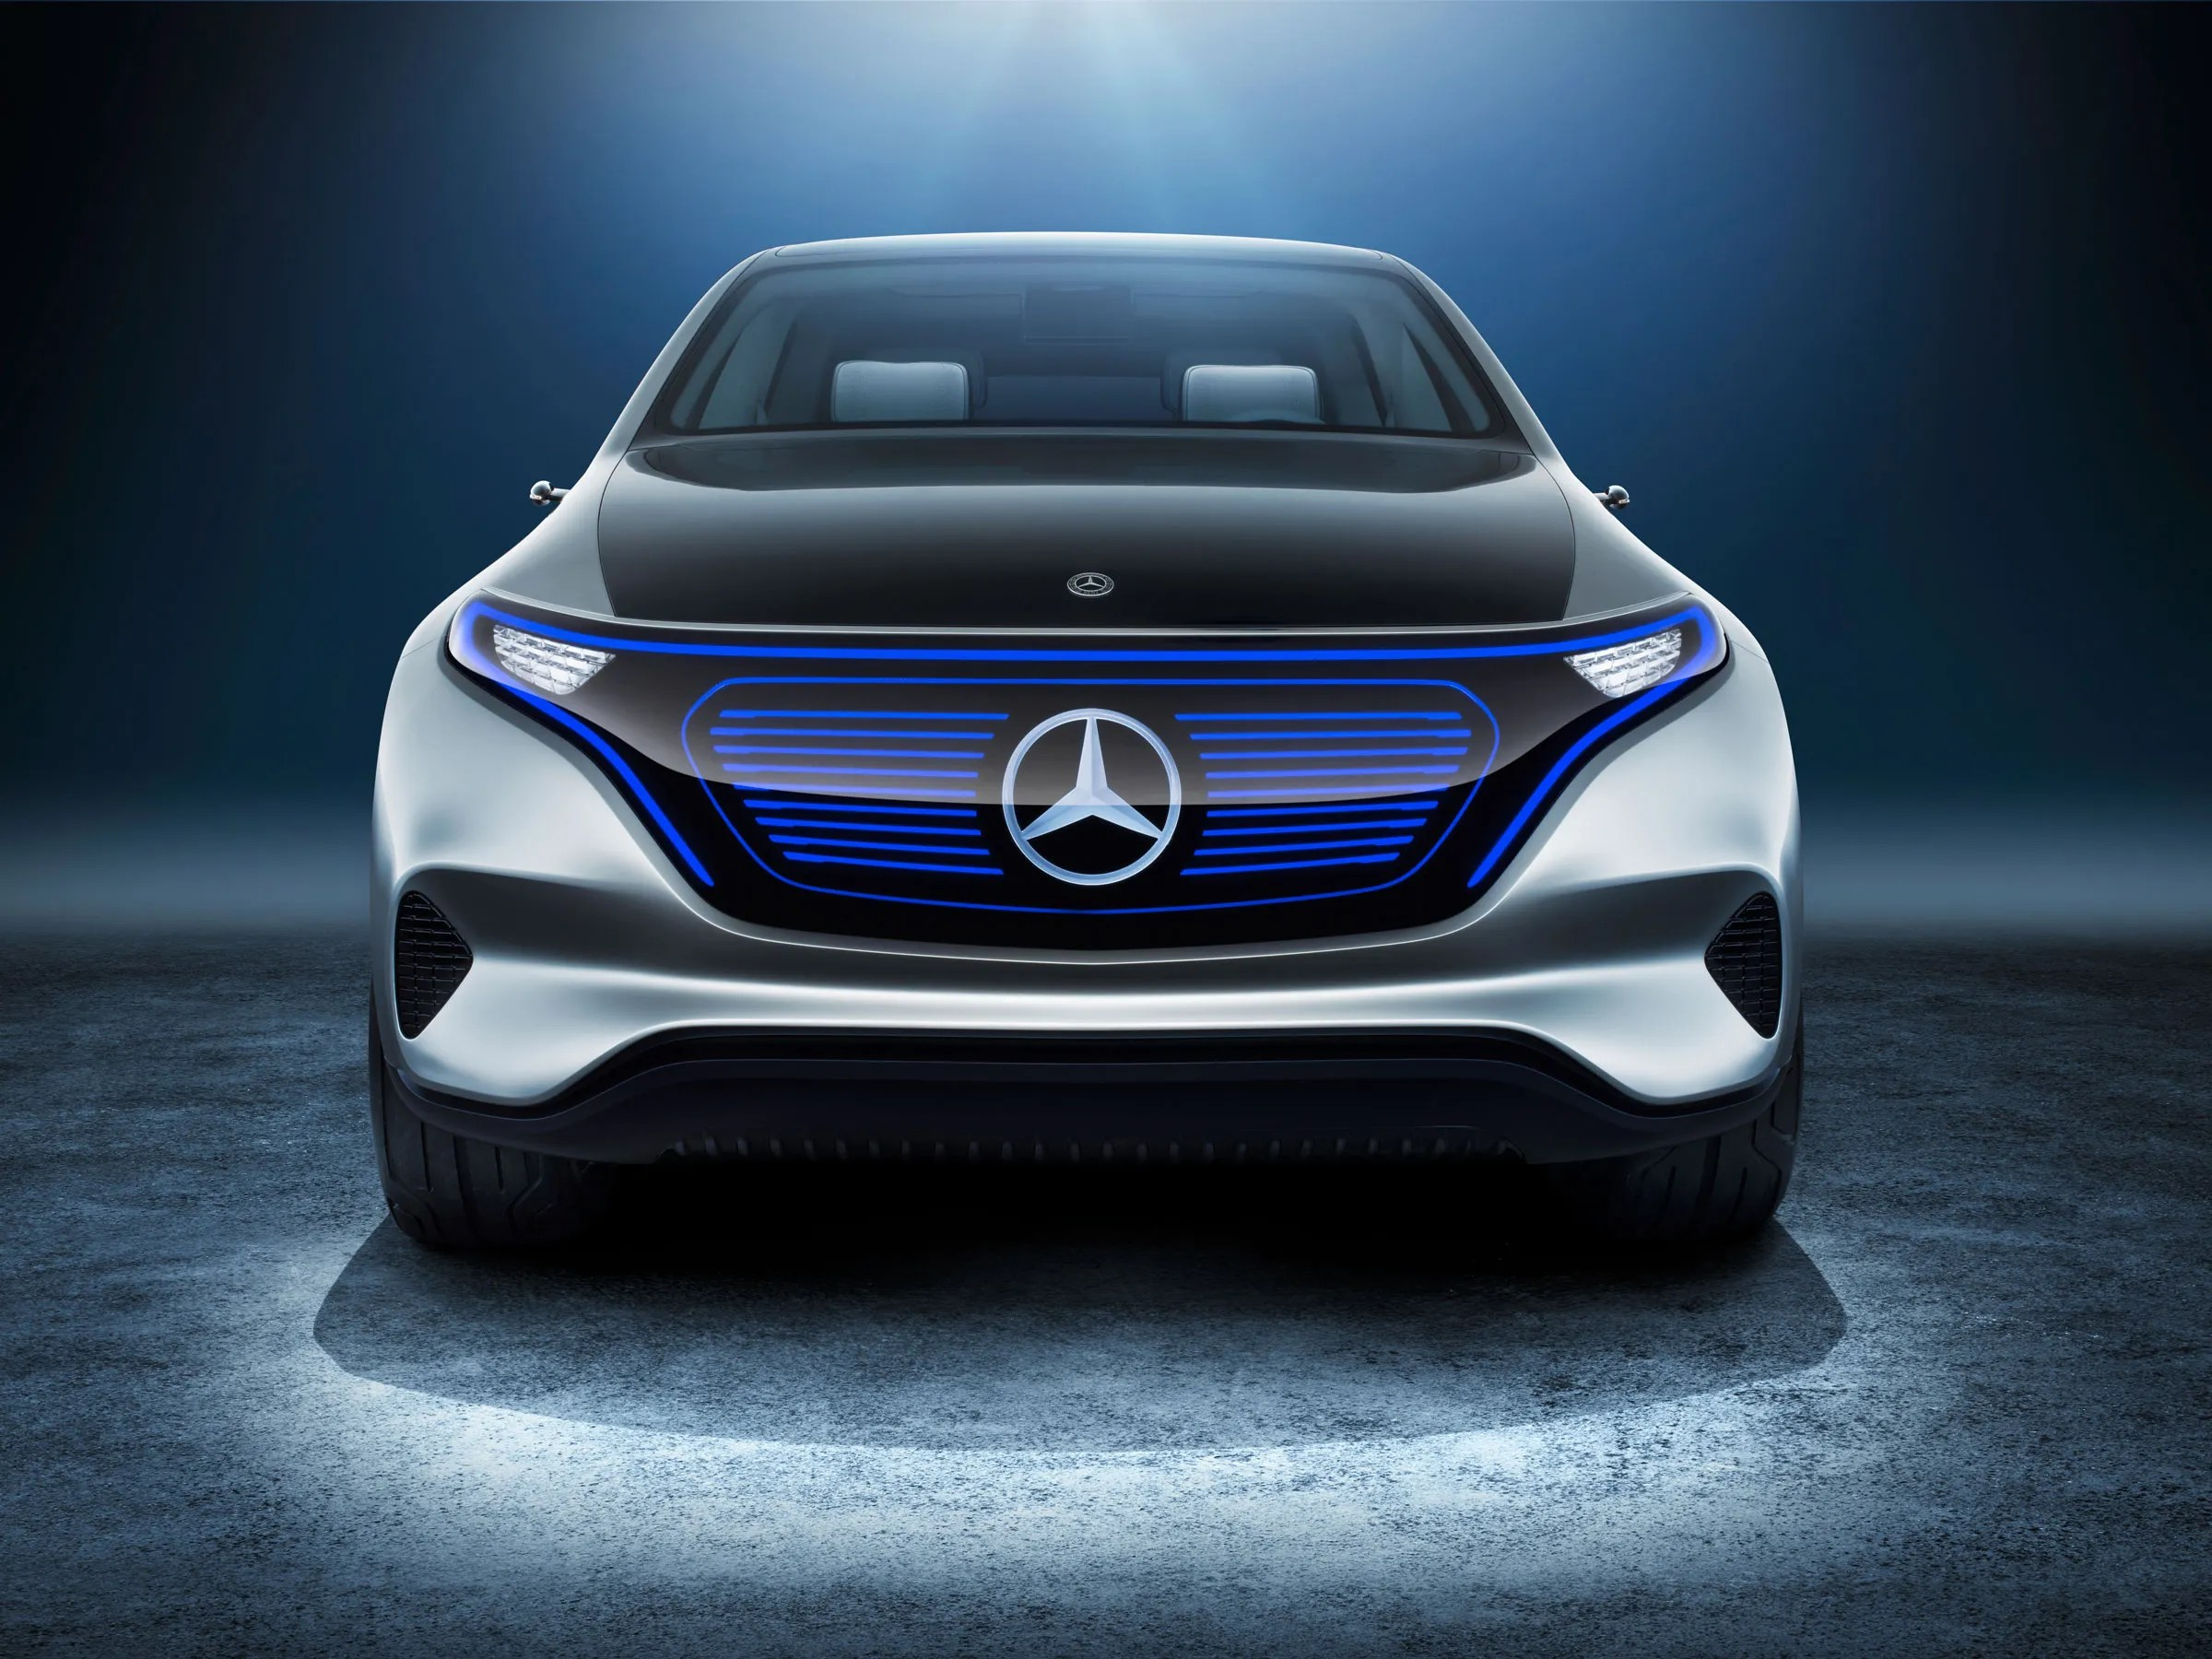 Mercedes Benz s Plan for Surviving the Auto Revolution   WIRED Mercedes Benz s Plan for Surviving the Auto Revolution